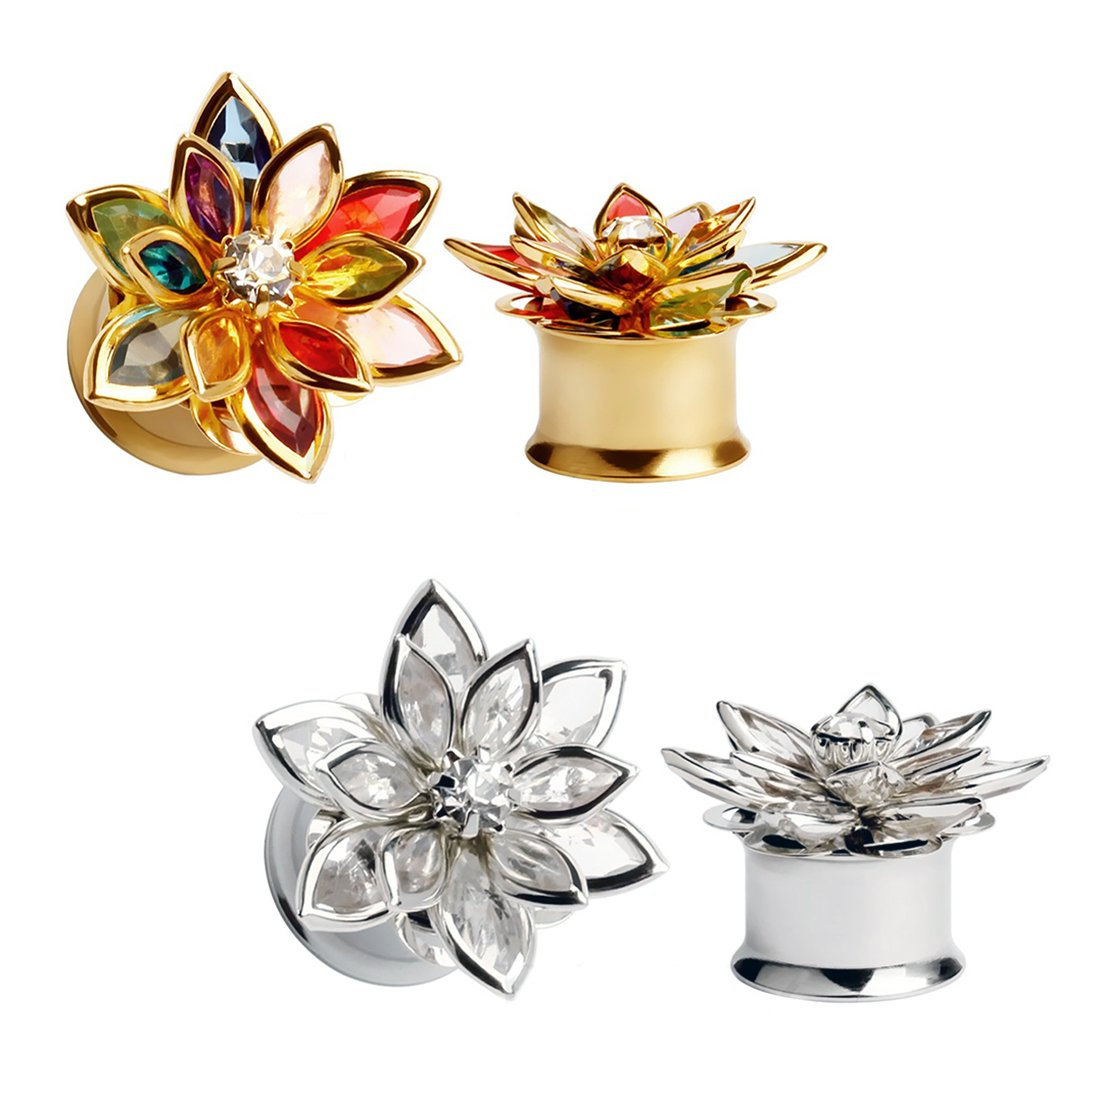 HuaCan 4pcs Flesh Tunnels,Ear Tunnels 3D petal Double Flared 316L Surgical Steel Silver+ Gold 6mm-14mm